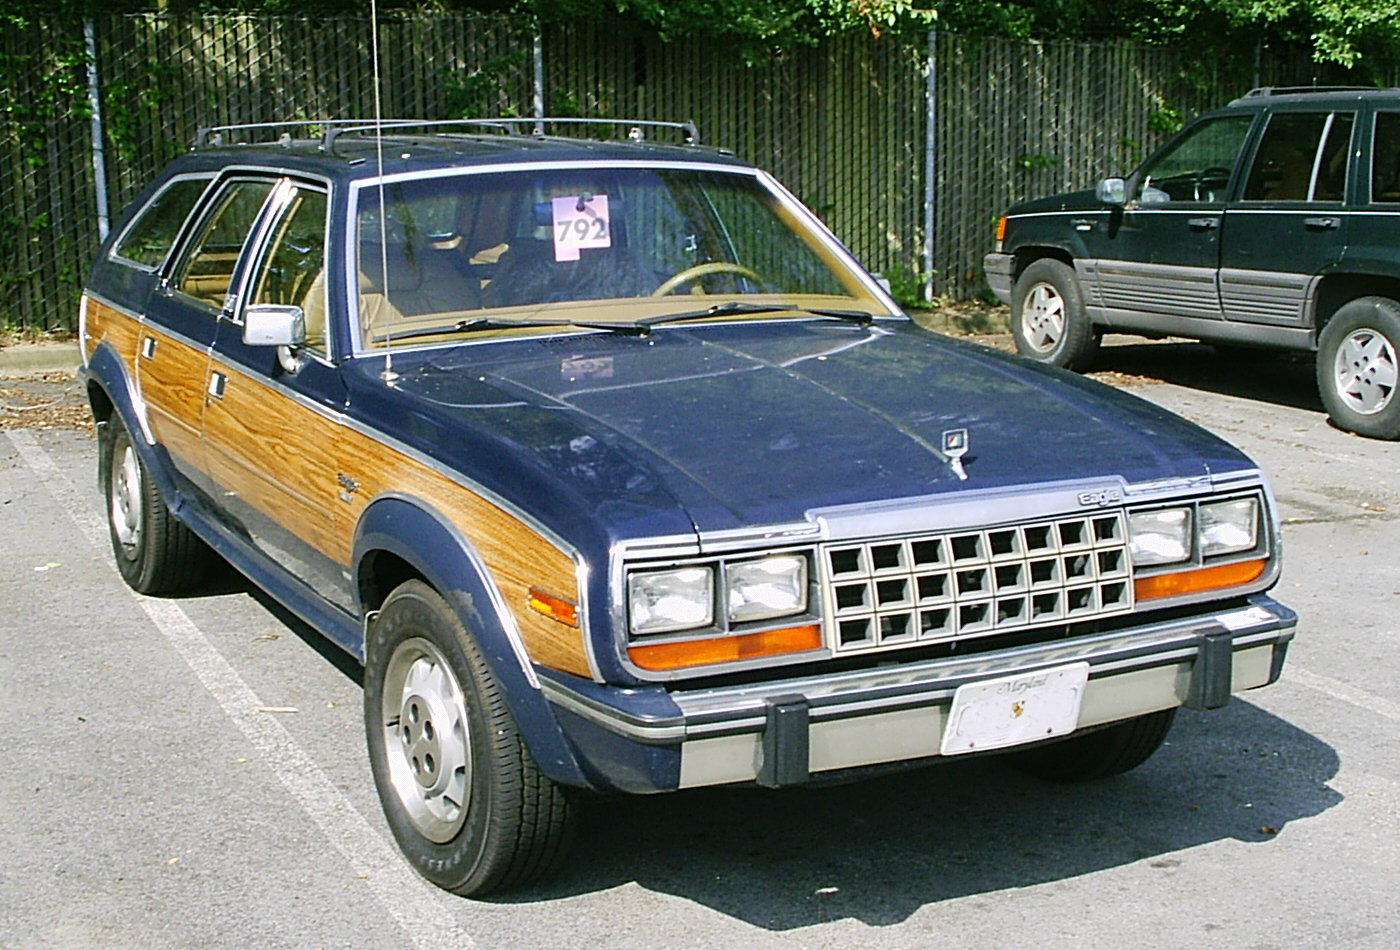 Amc eagle photo - 4